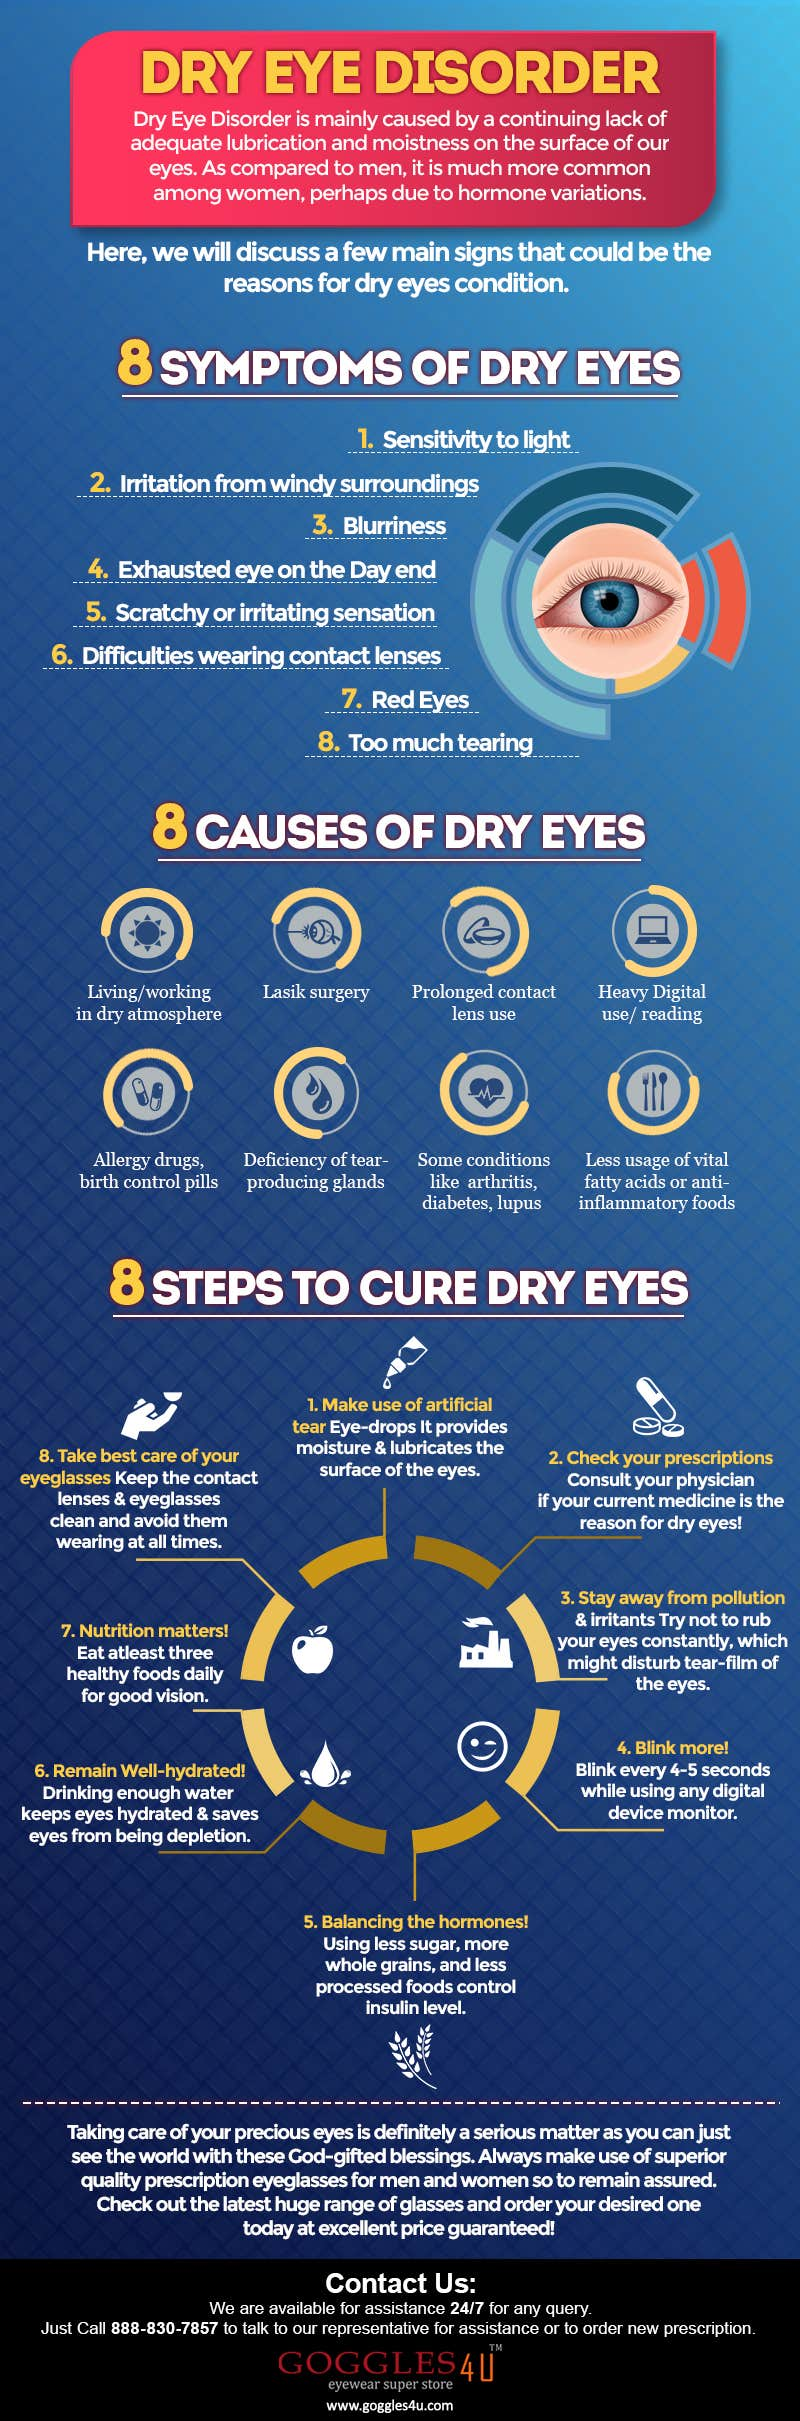 8 symptoms of dry eyes